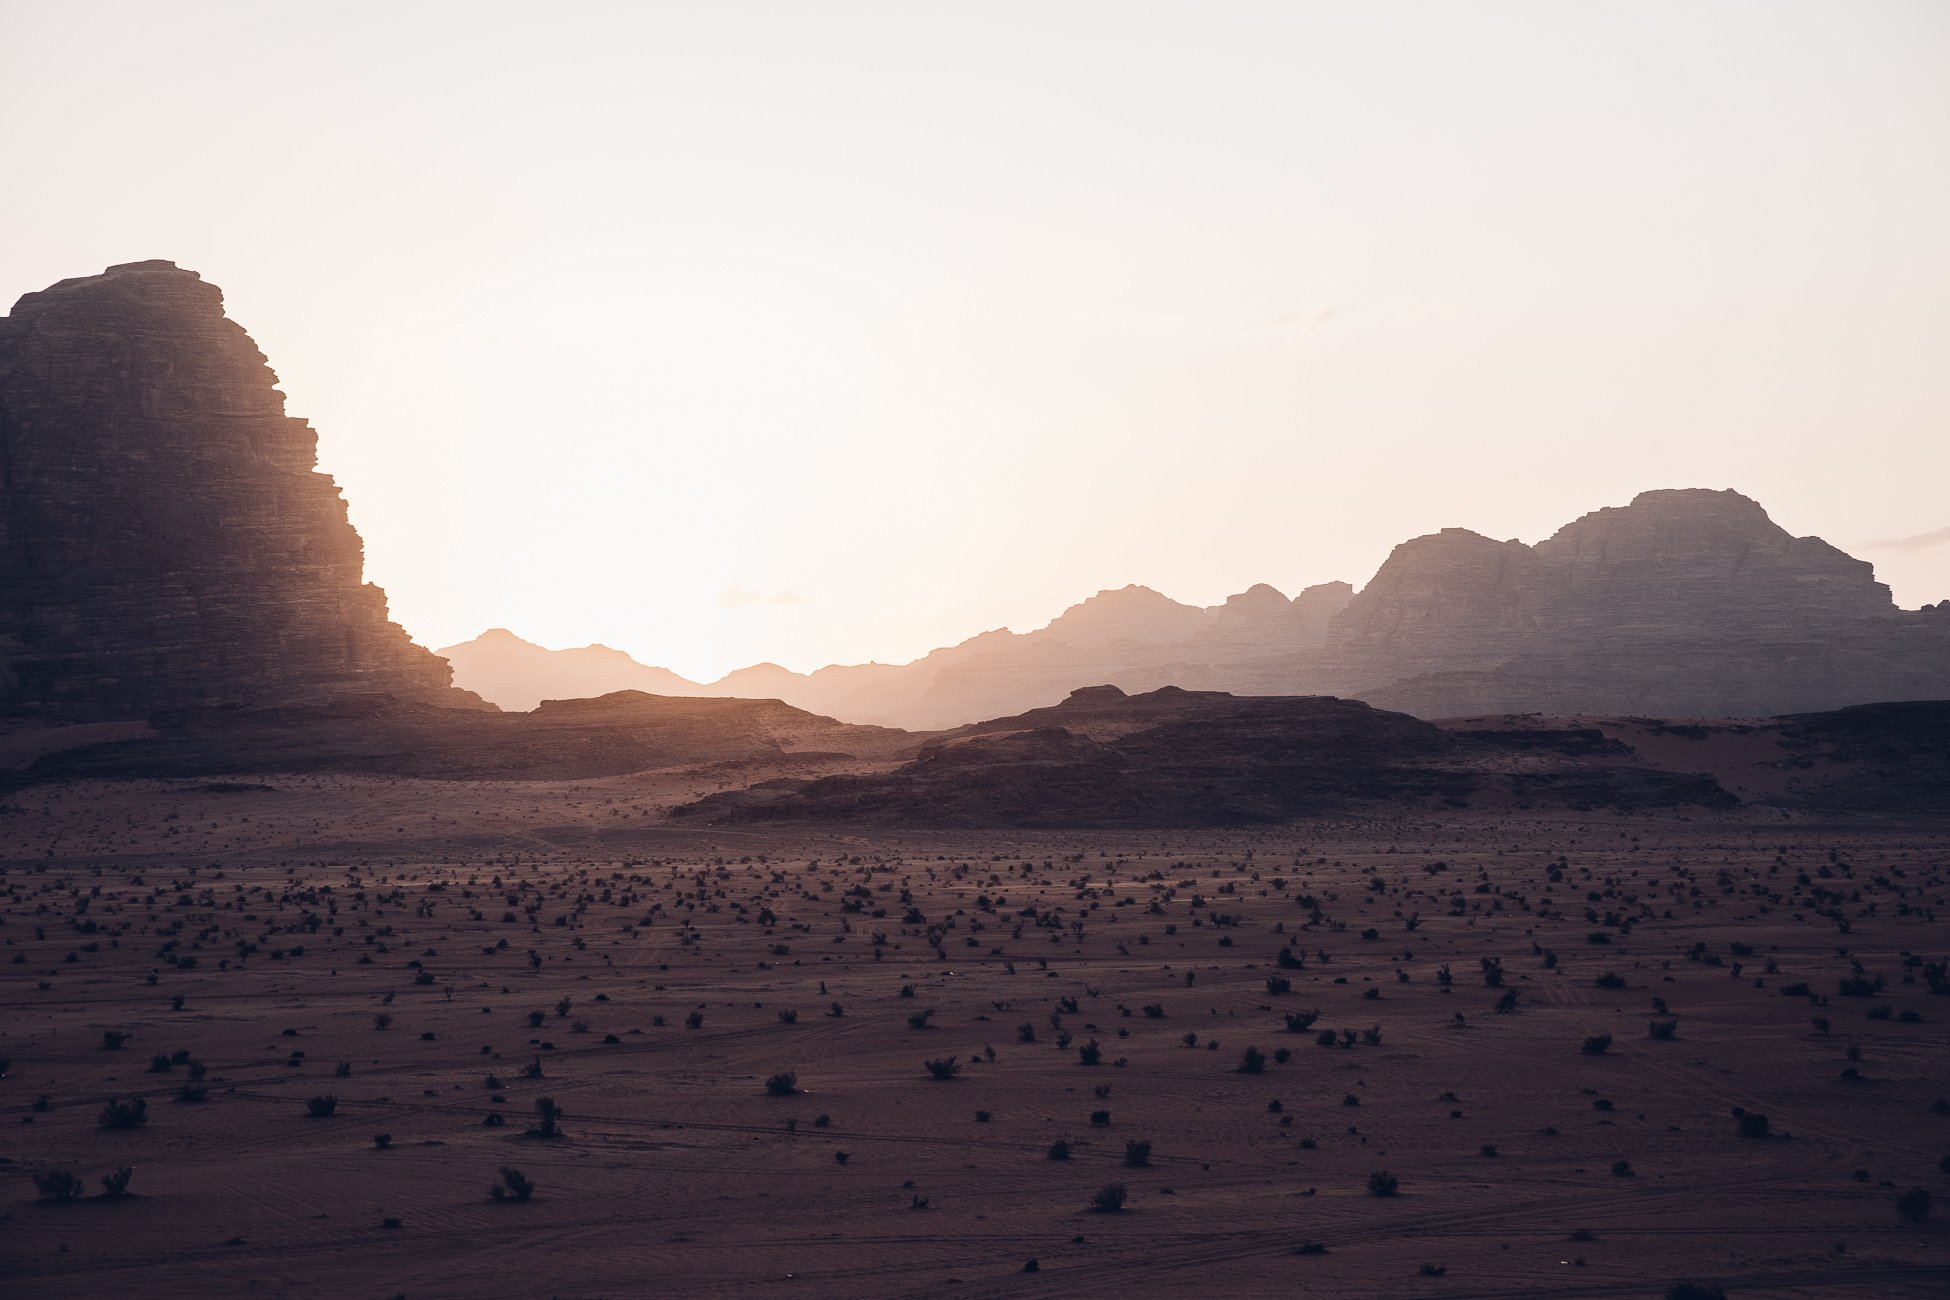 Sunset in the desert of Wadi Rum